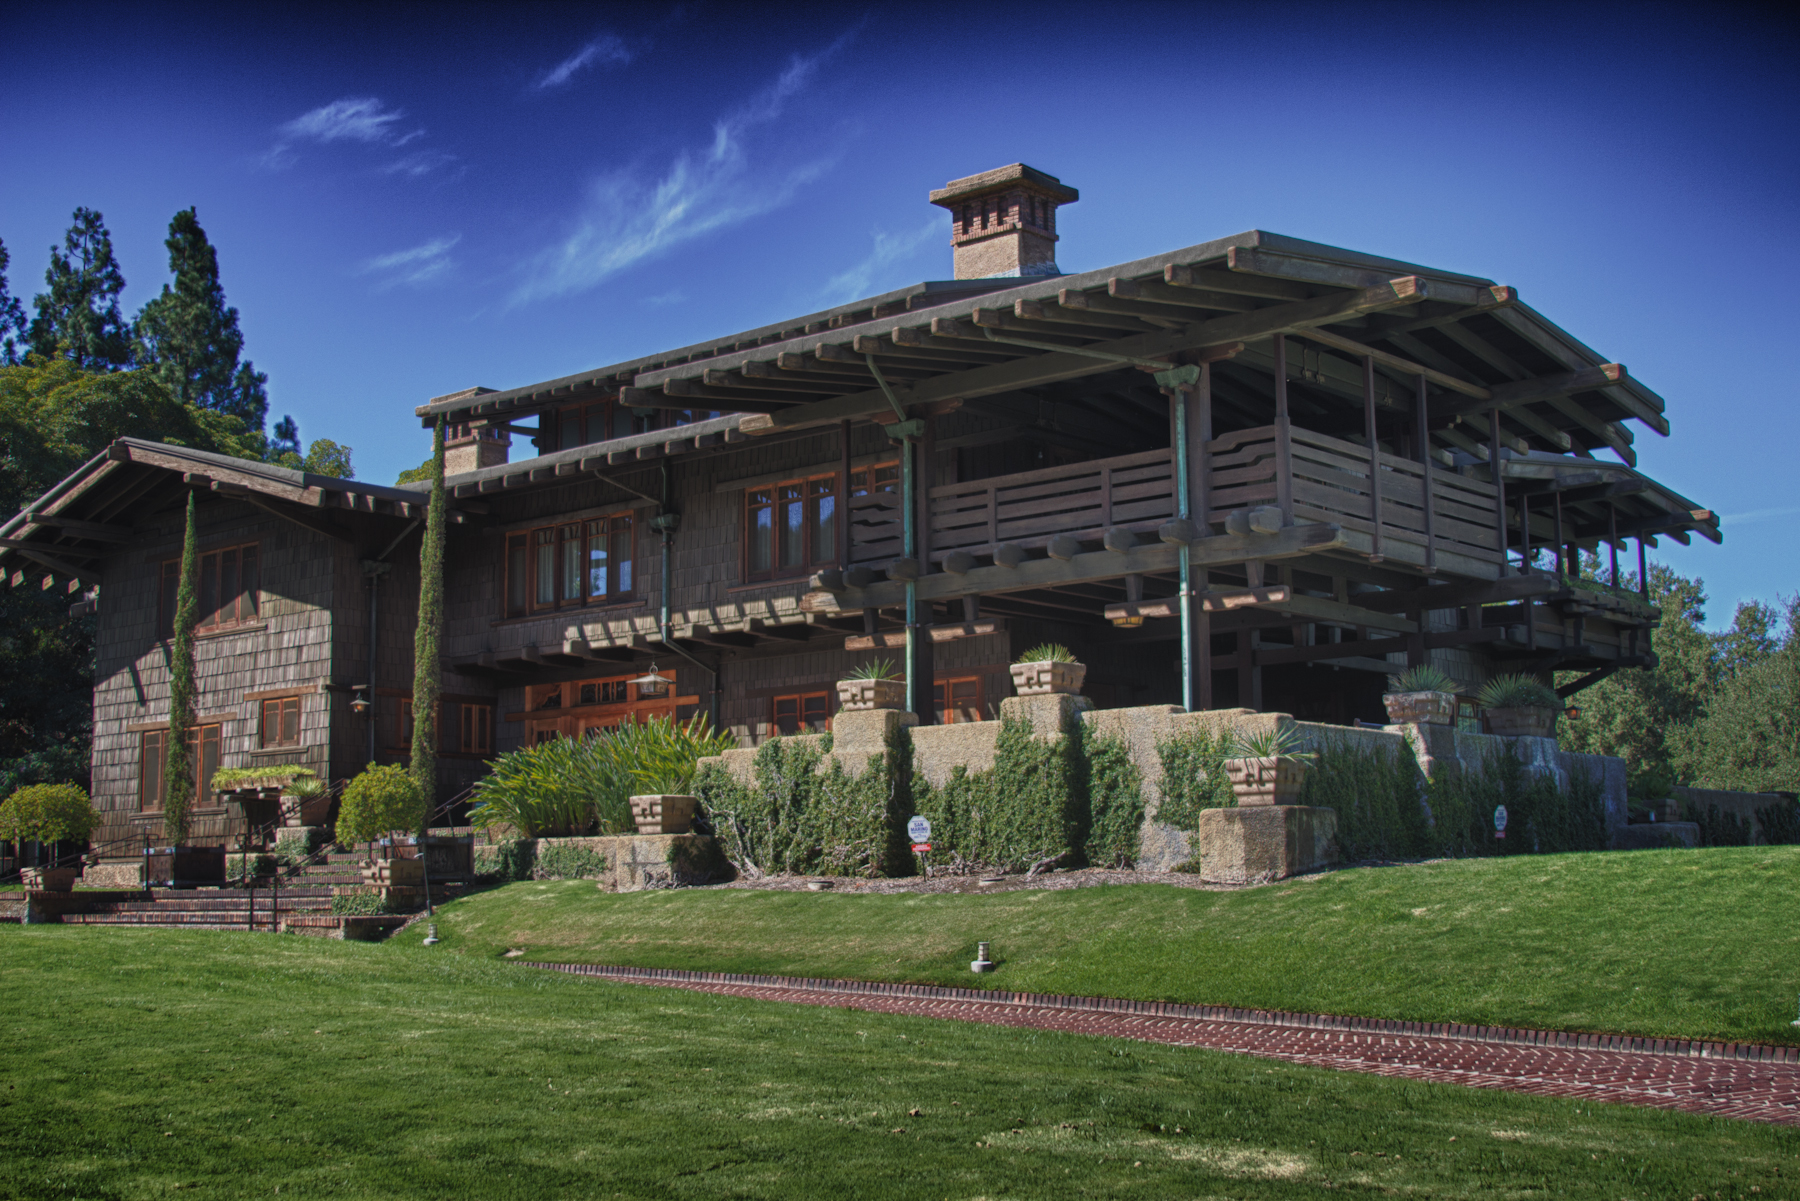 The Gamble House was built in 1908 and is a great example of Arts and Crafts style architecture.